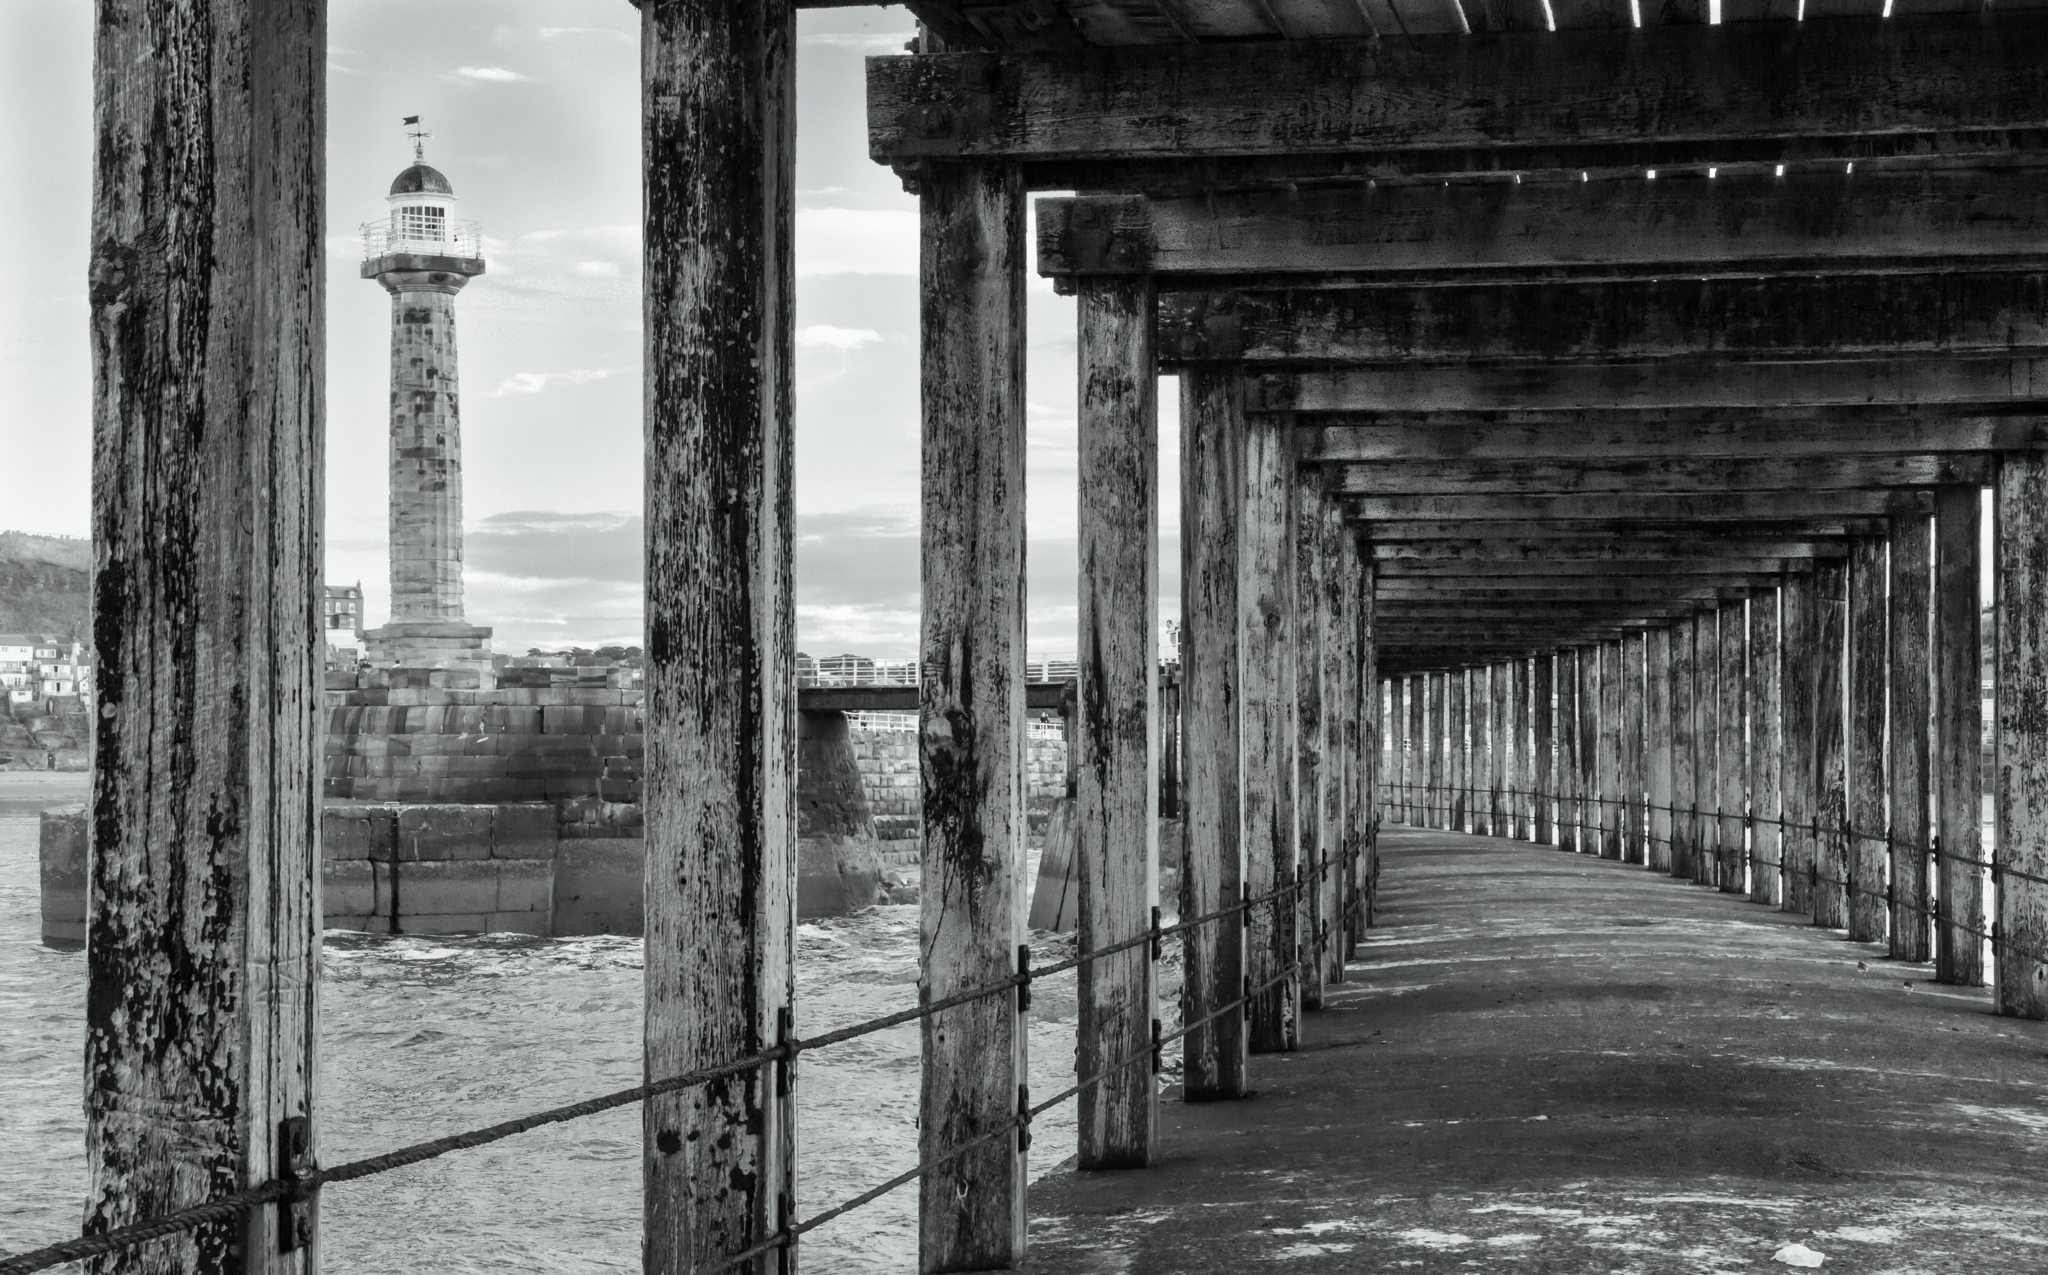 This monochrome image is a view from the lower level of the harbour wall at Whitby, North Yorkshire. The disused lighthouse can also be seen between the wood pillars.